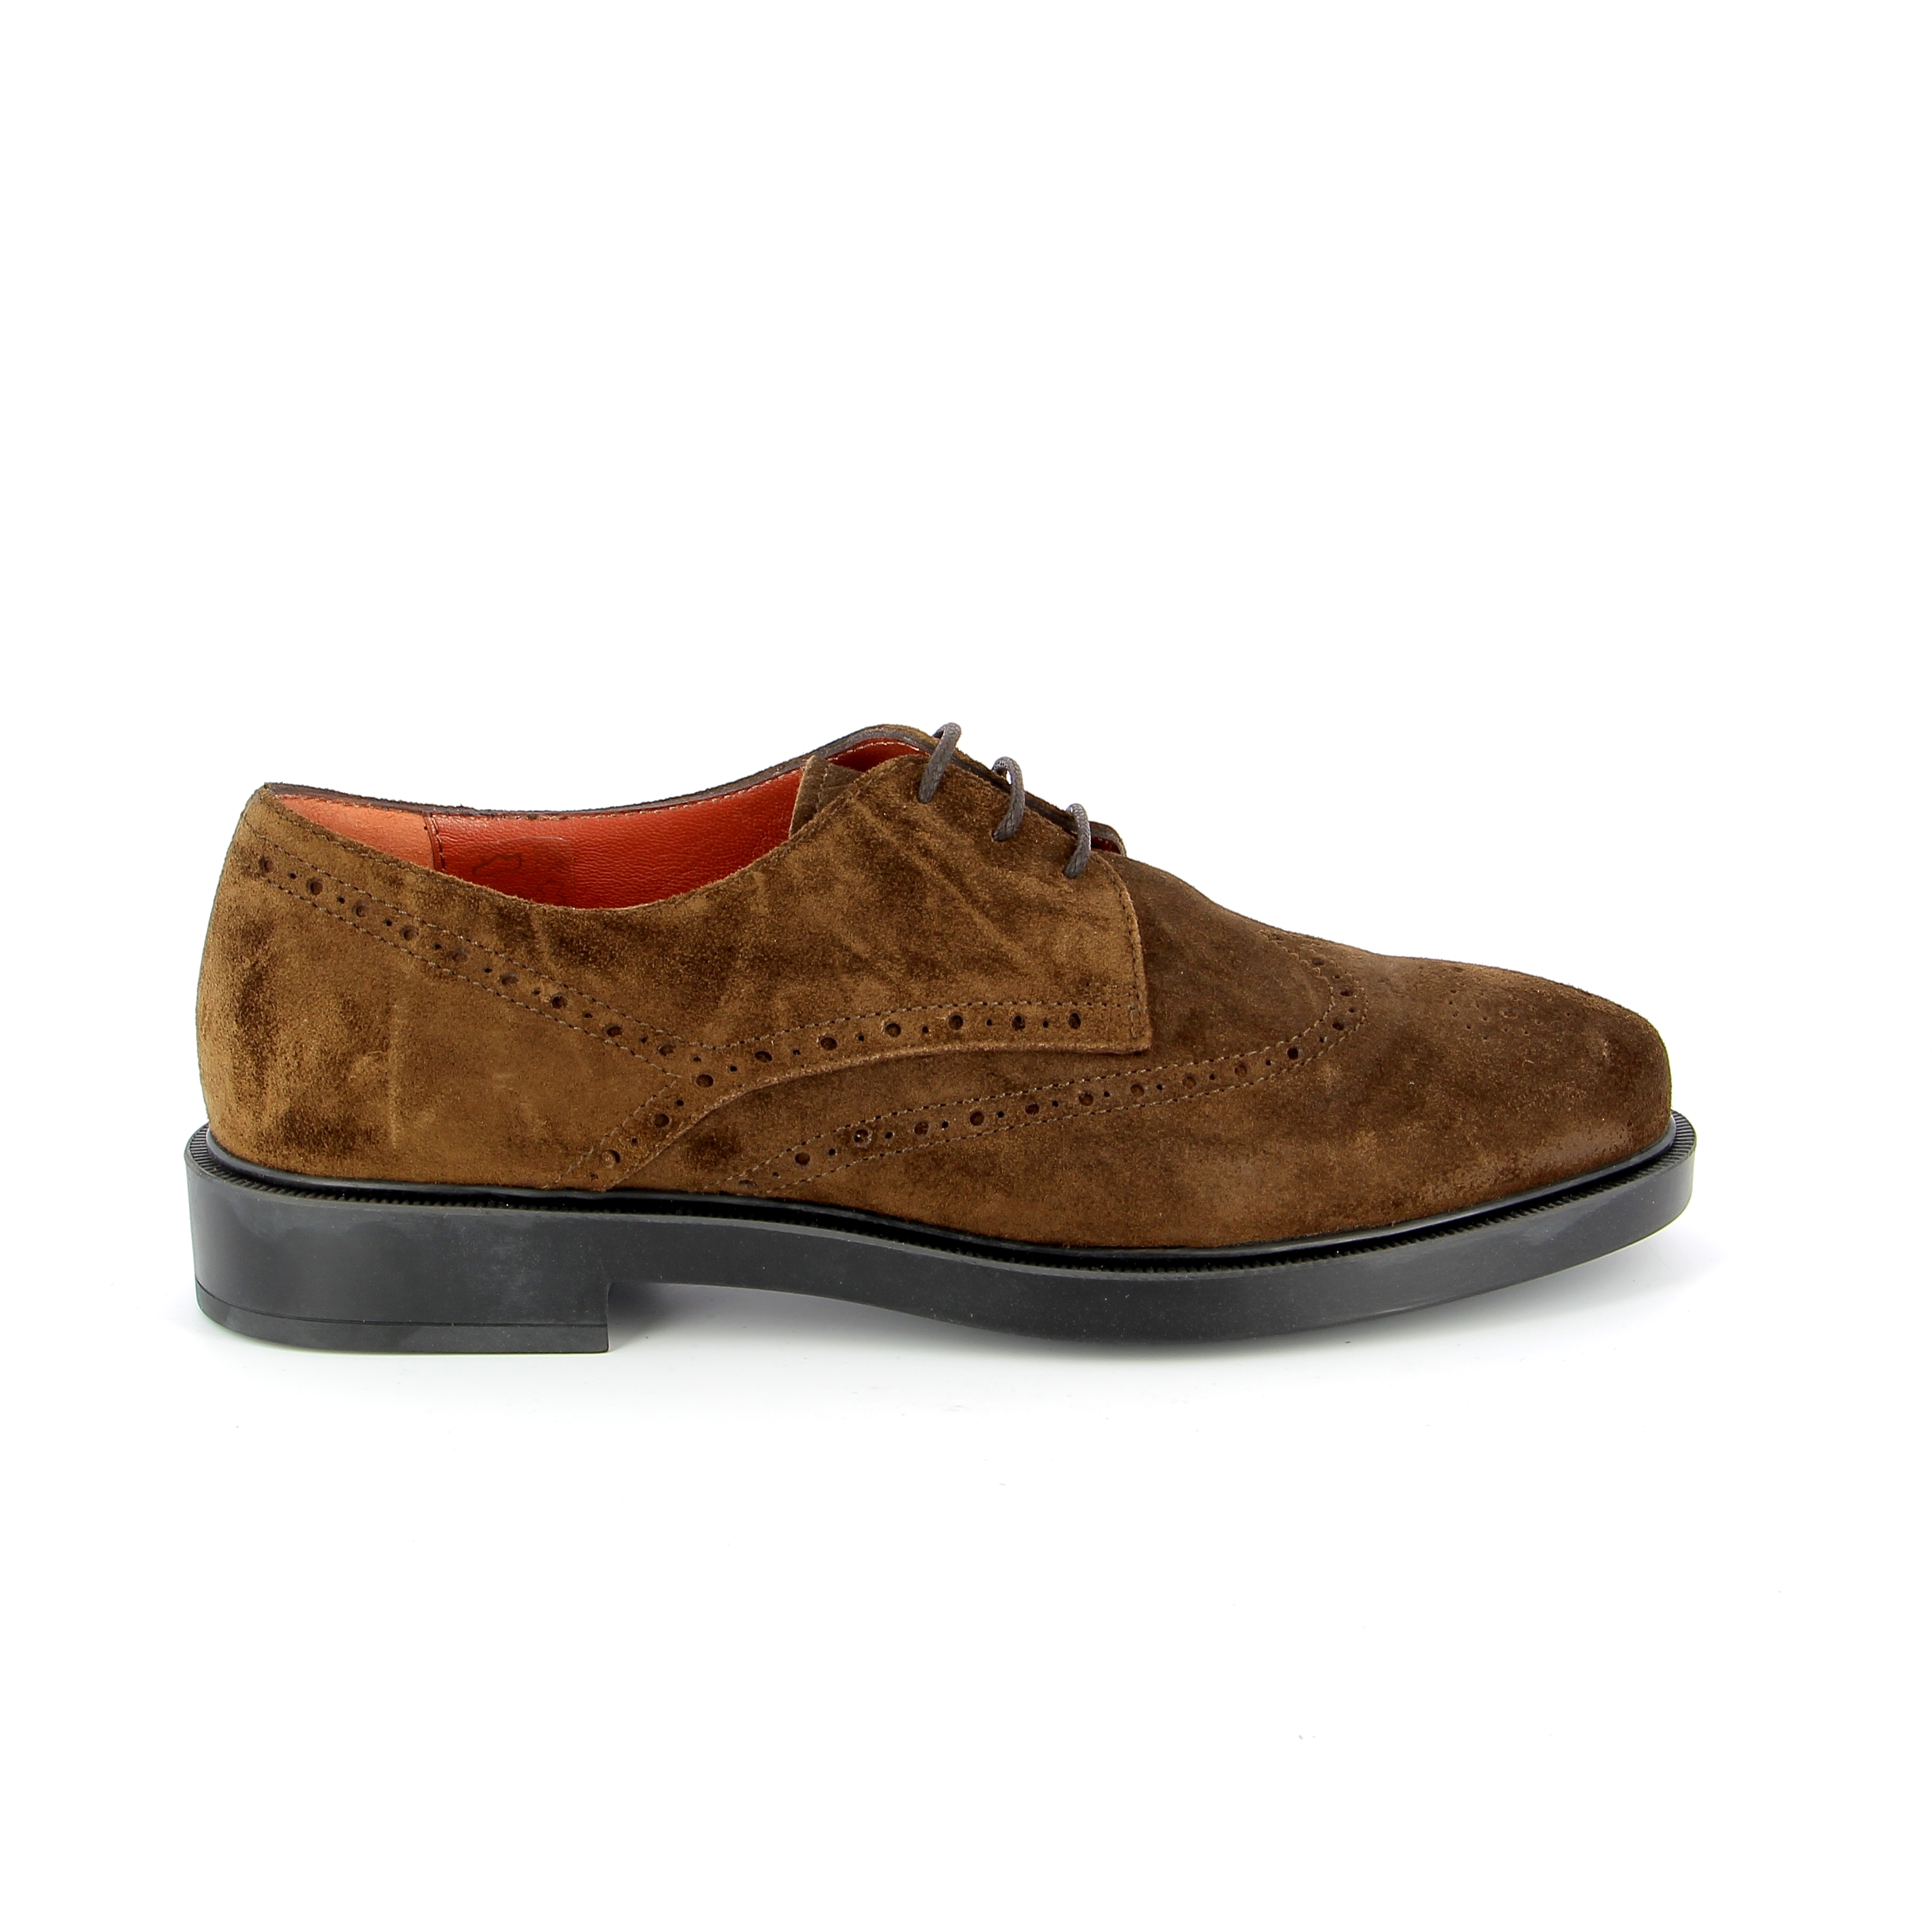 Triver Flight Veterschoenen cognac